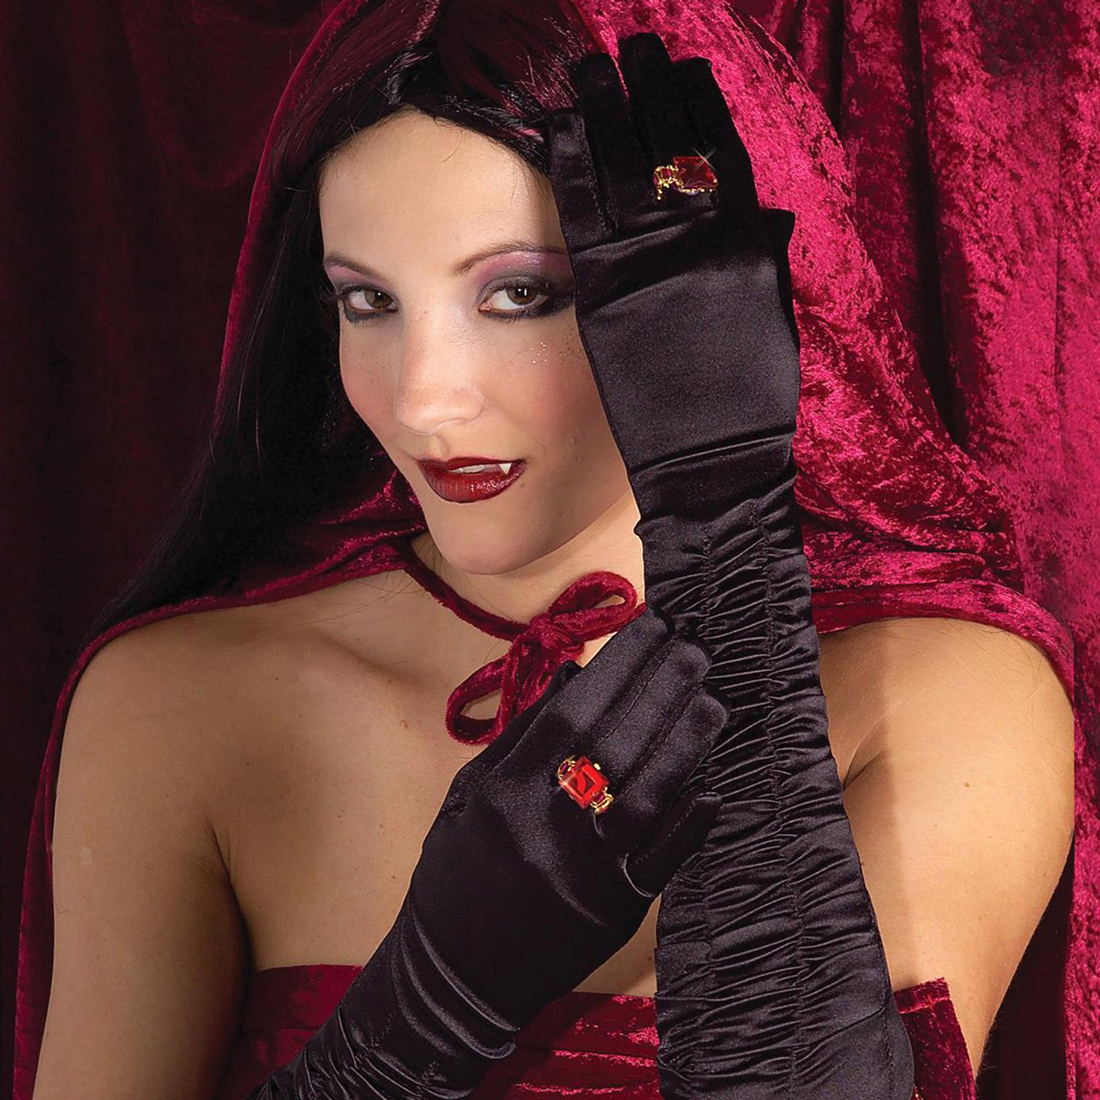 Long Sexy Vampiress Gloves